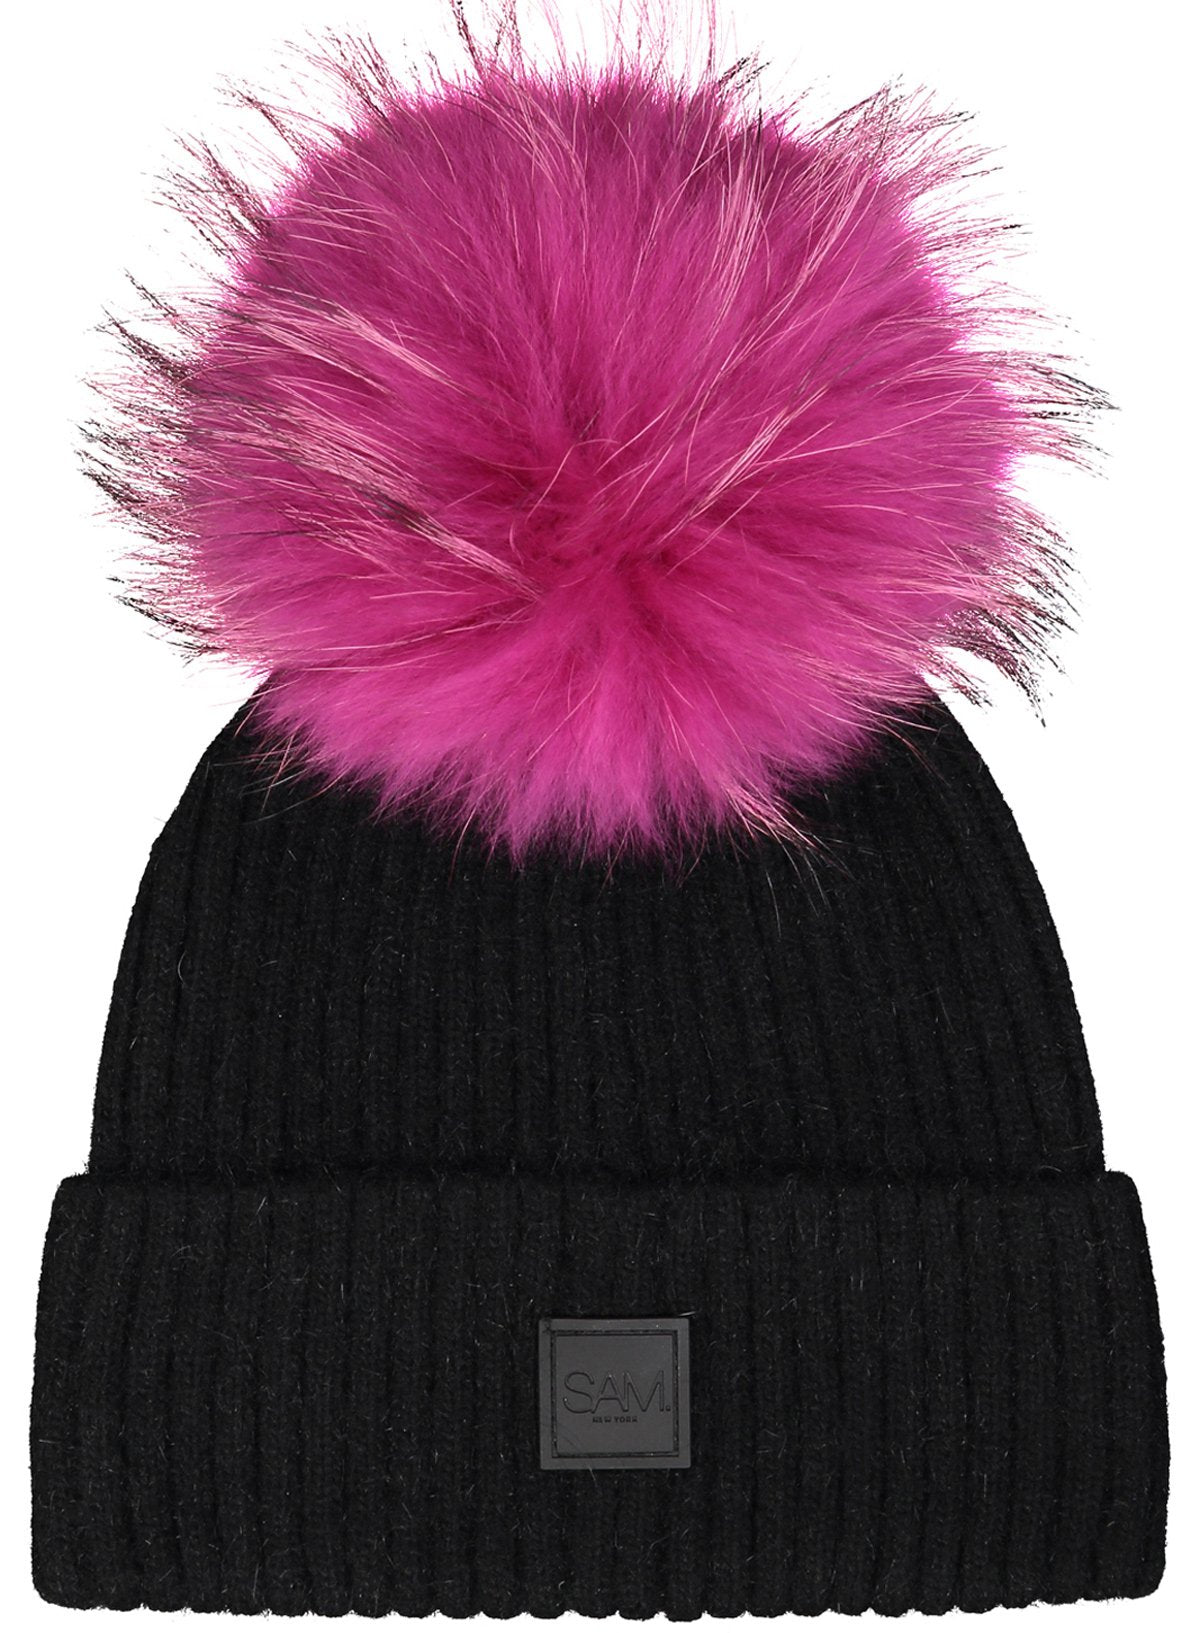 FUR BEANIE FUR BEANIE - SAM. New York Sam nyc jacket